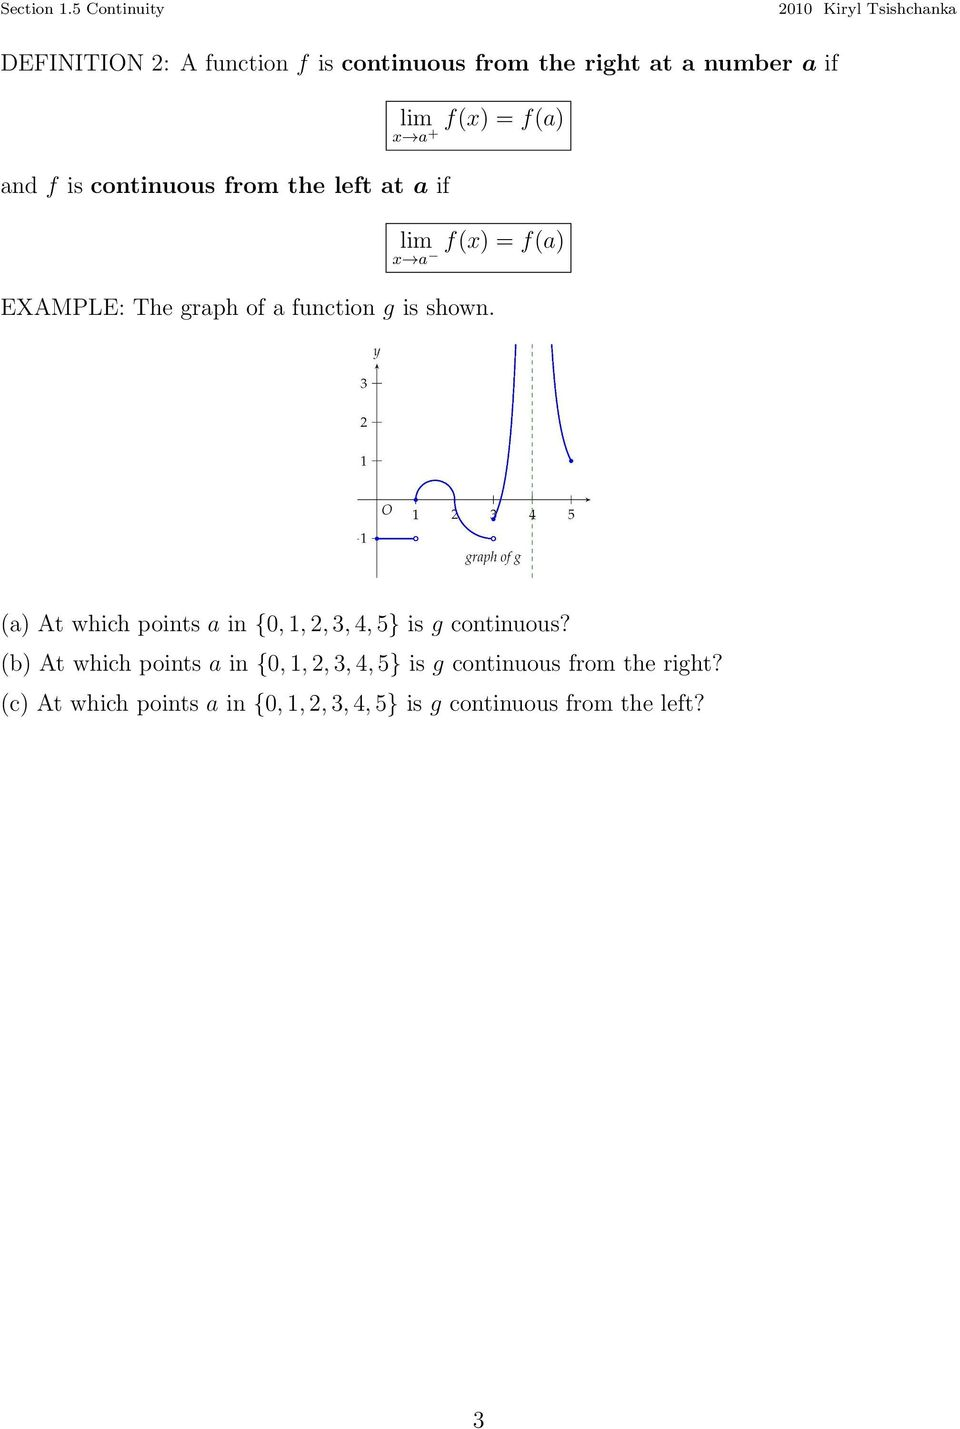 (a) At which points a in {0,,2,3,4,5} is g continuous?